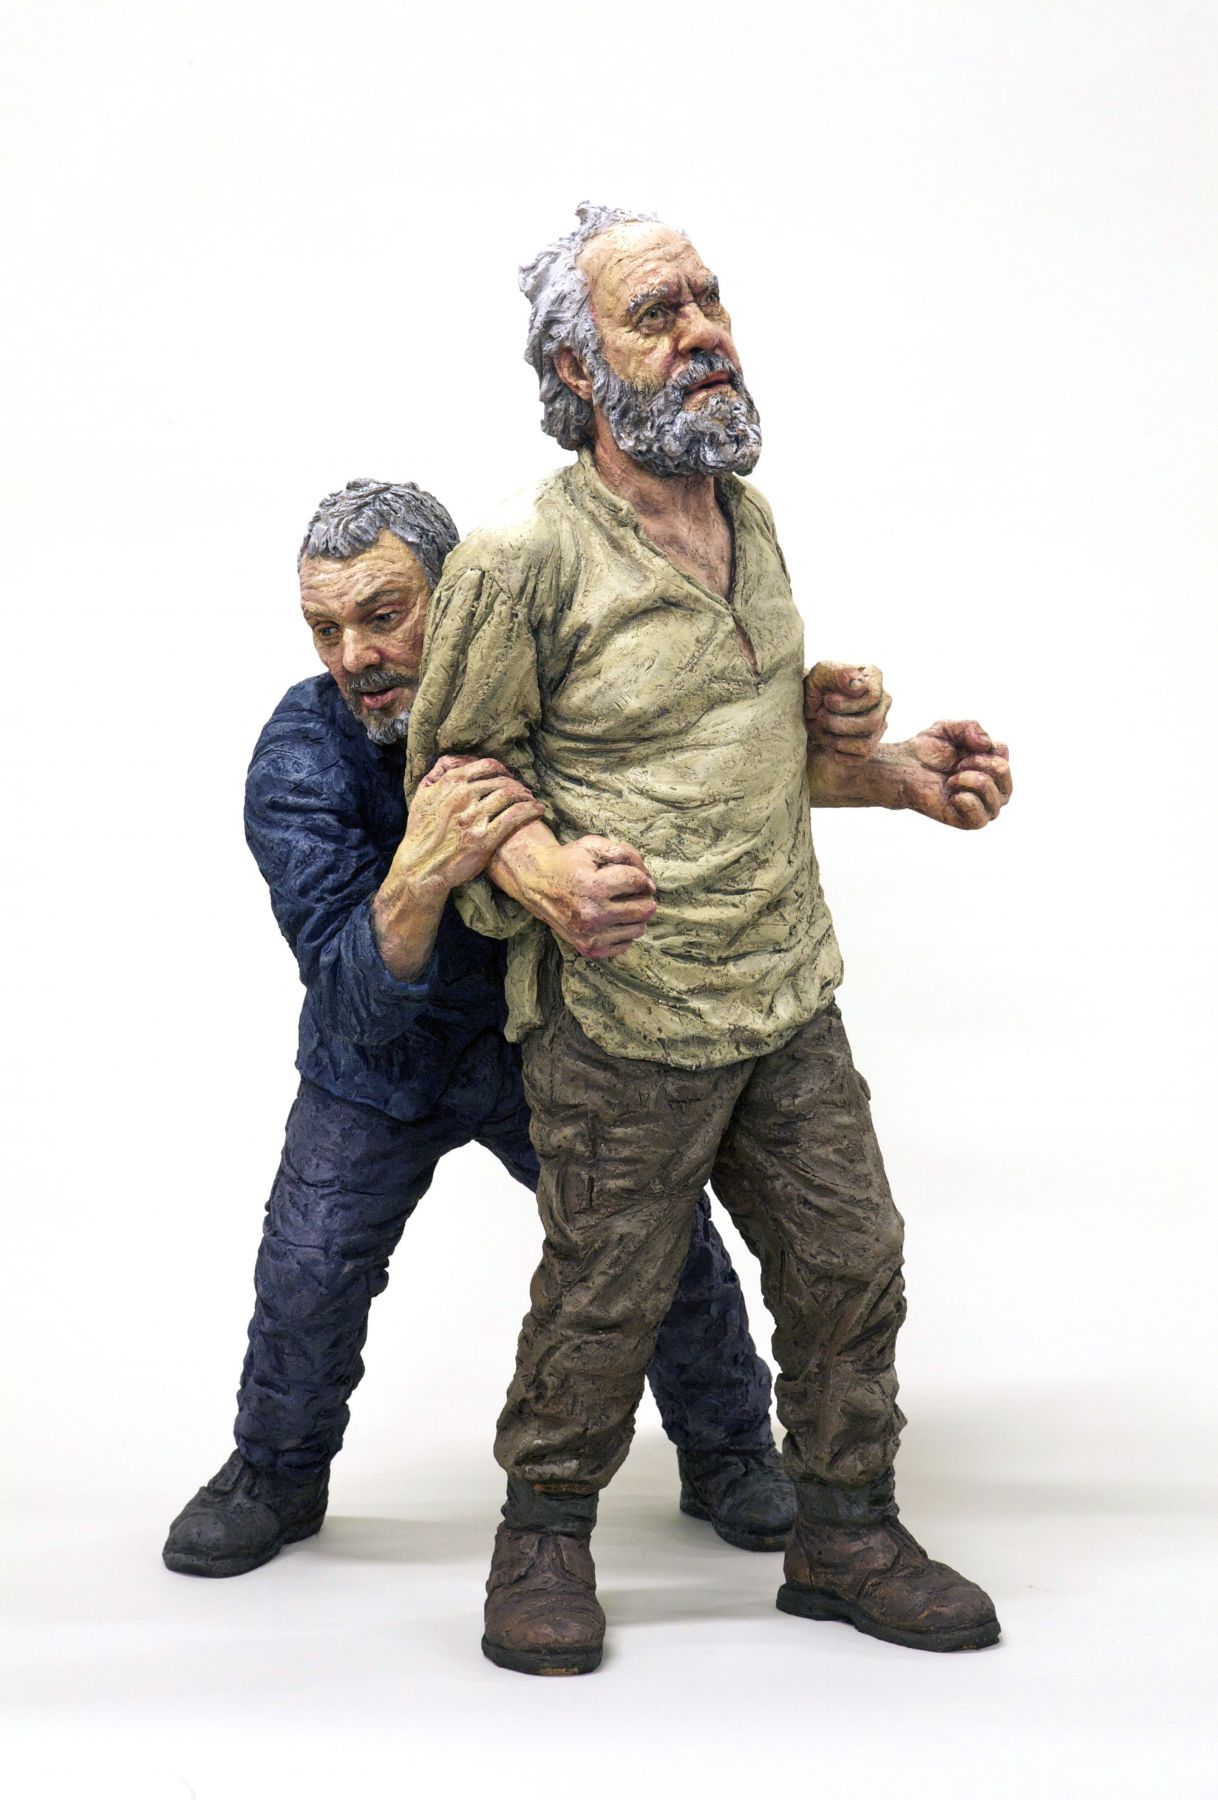 sean henry, T.B.T.F., 2013, bronze, oil paint, 25 x 13 x 17 inches, Edition of 6